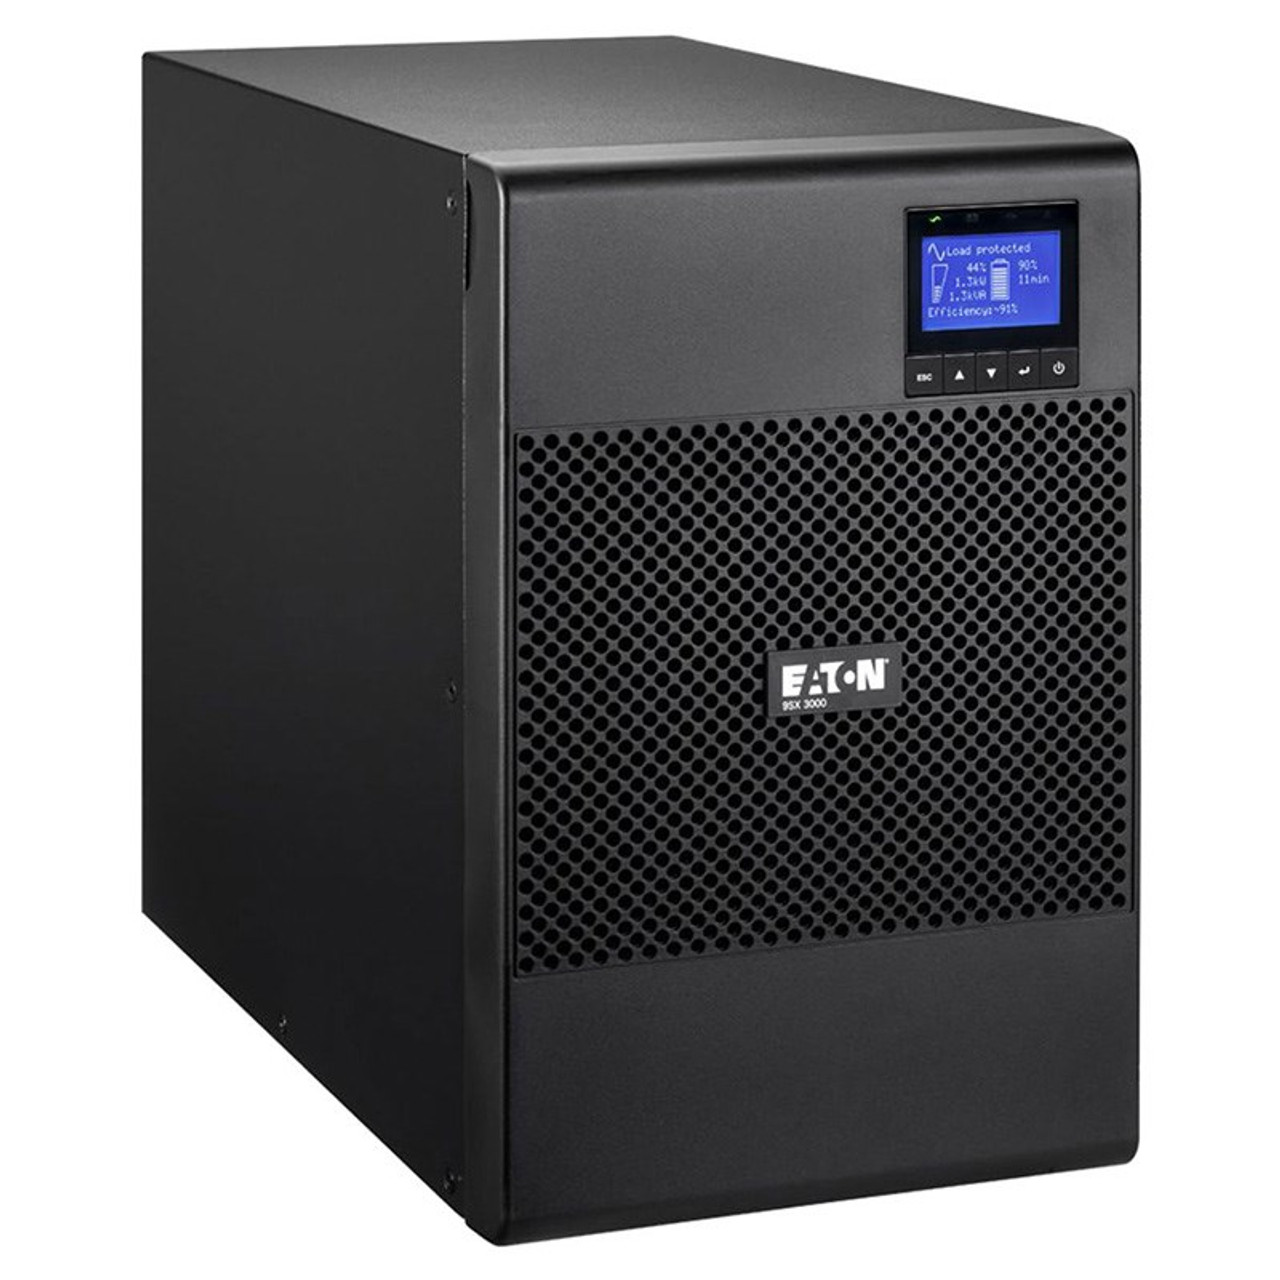 Product image for Eaton 9SX 2000I 2000VA / 1800W 240V On-Line Tower UPS | CX Computer Superstore